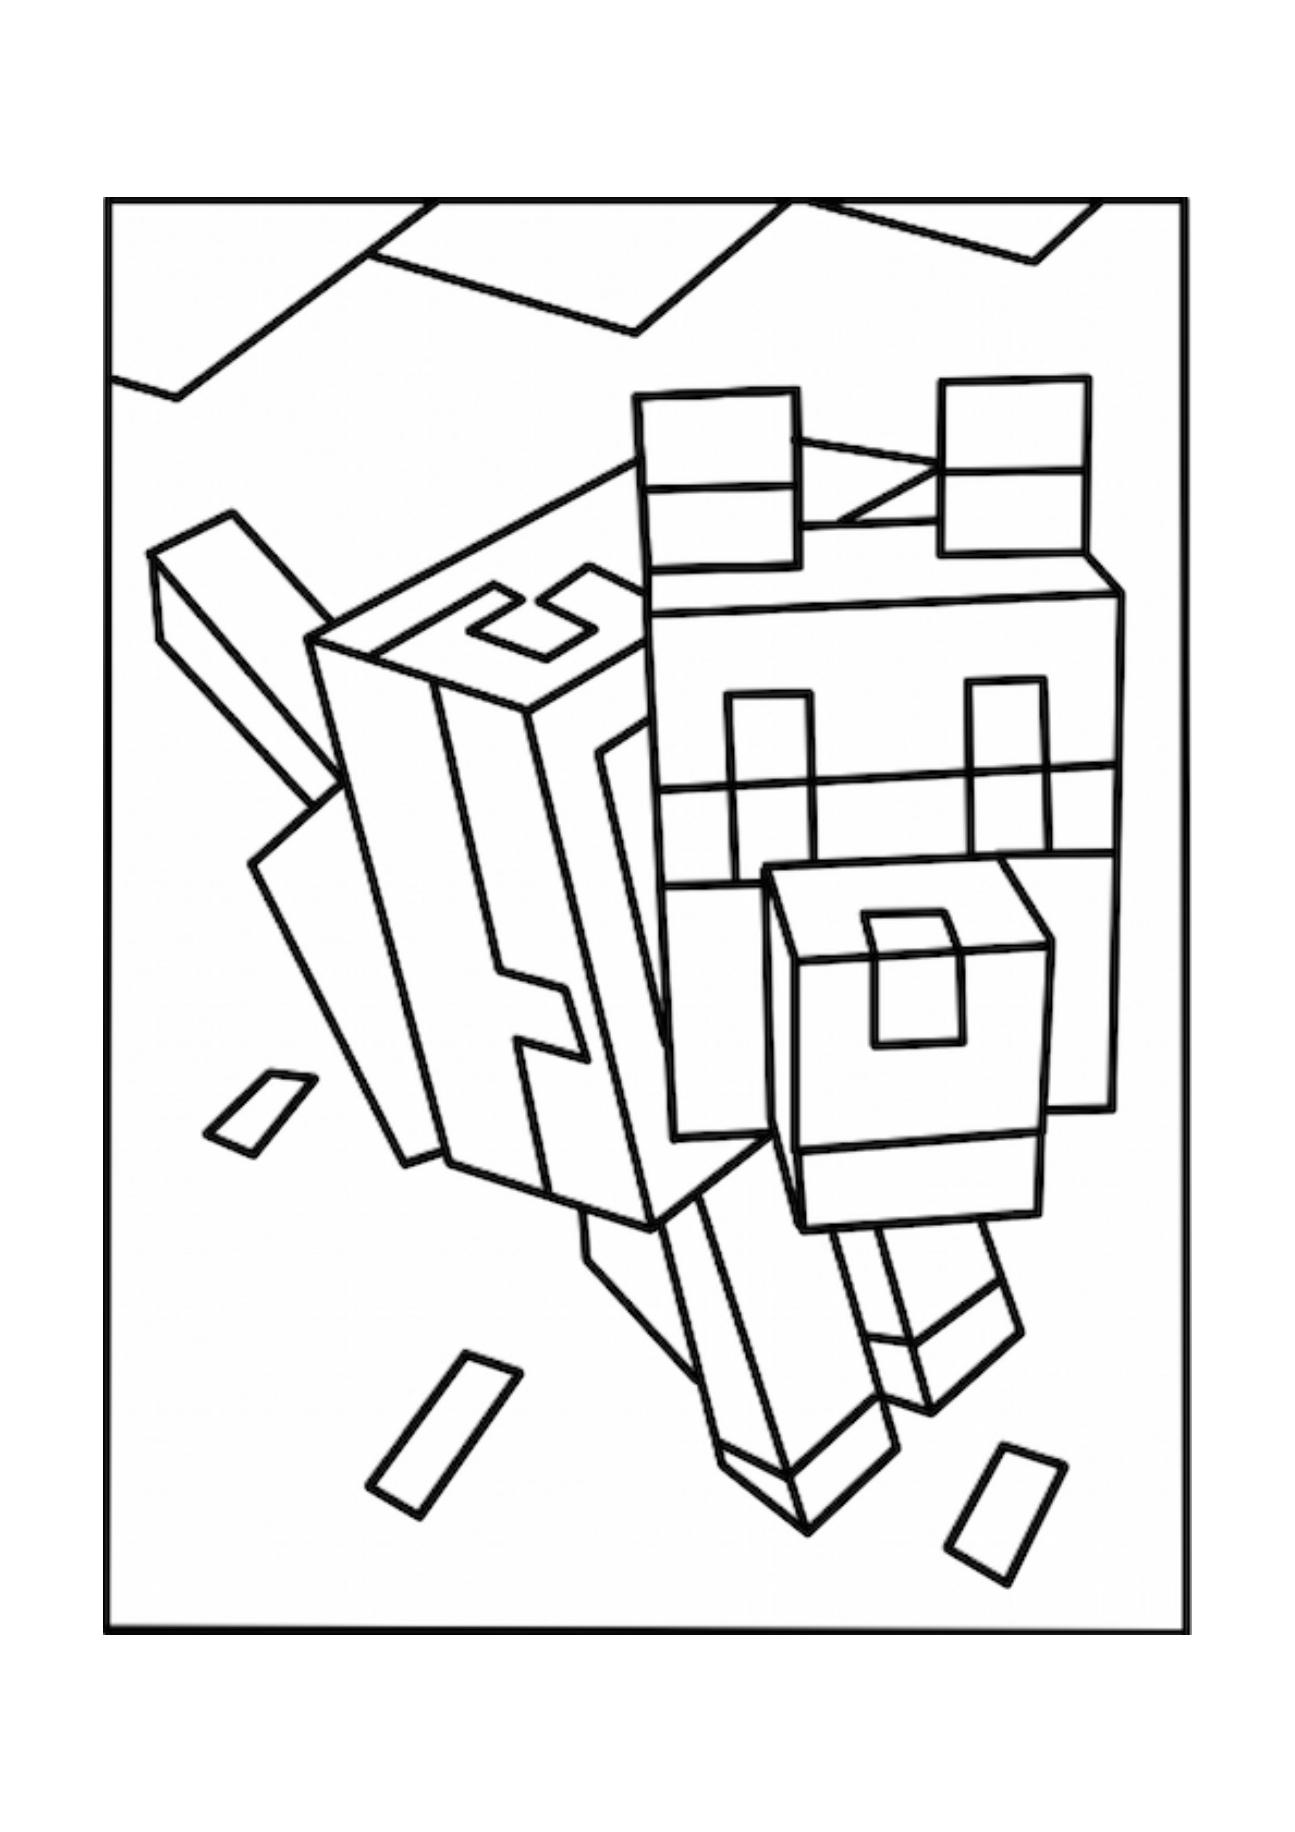 images of minecraft coloring pages free printable minecraft coloring pages images minecraft pages coloring of